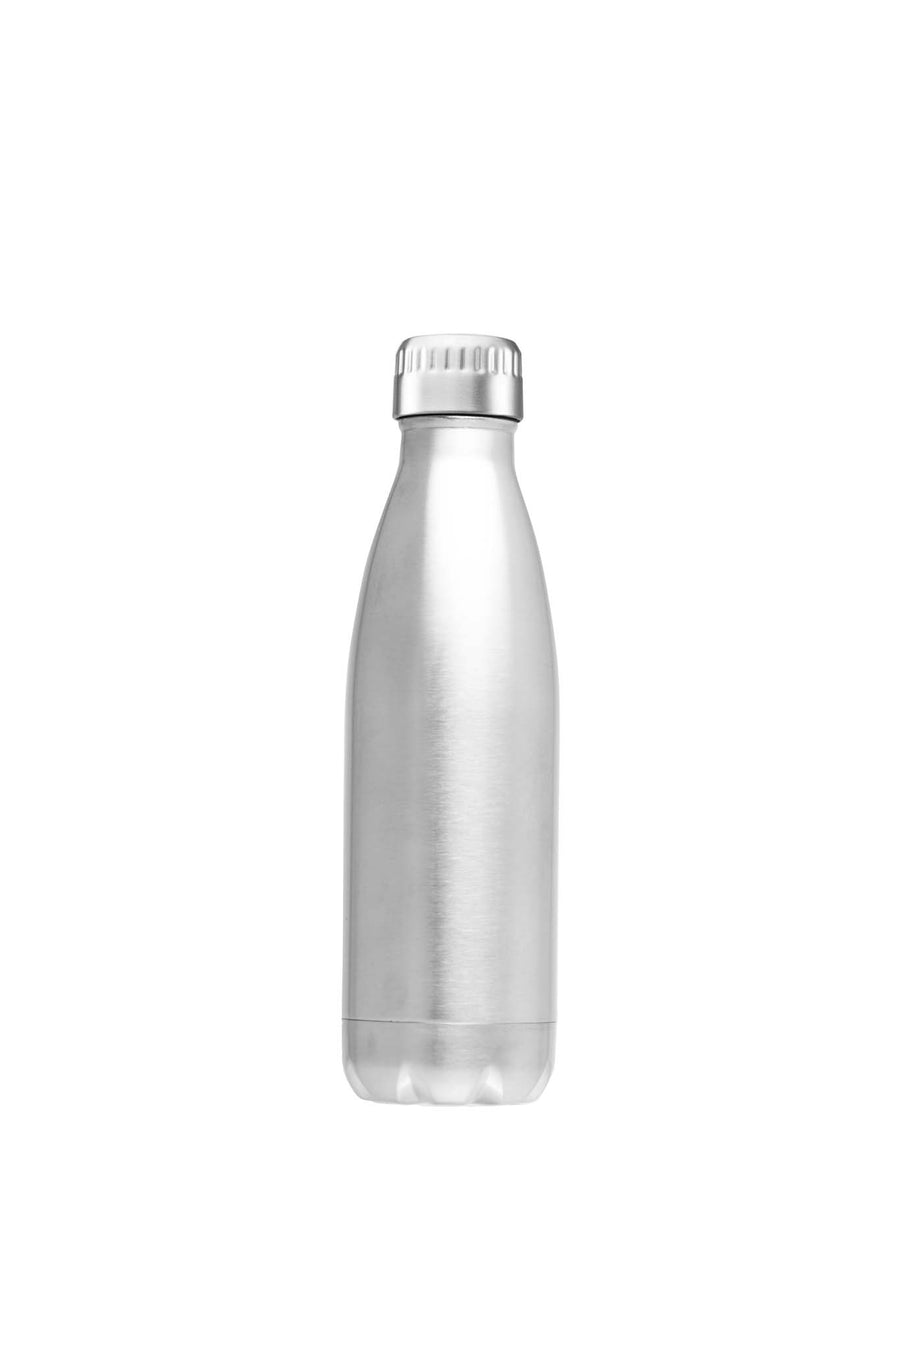 Water/Coffee Double Walled Thermos Bottle 750ml - Brushed Stainless